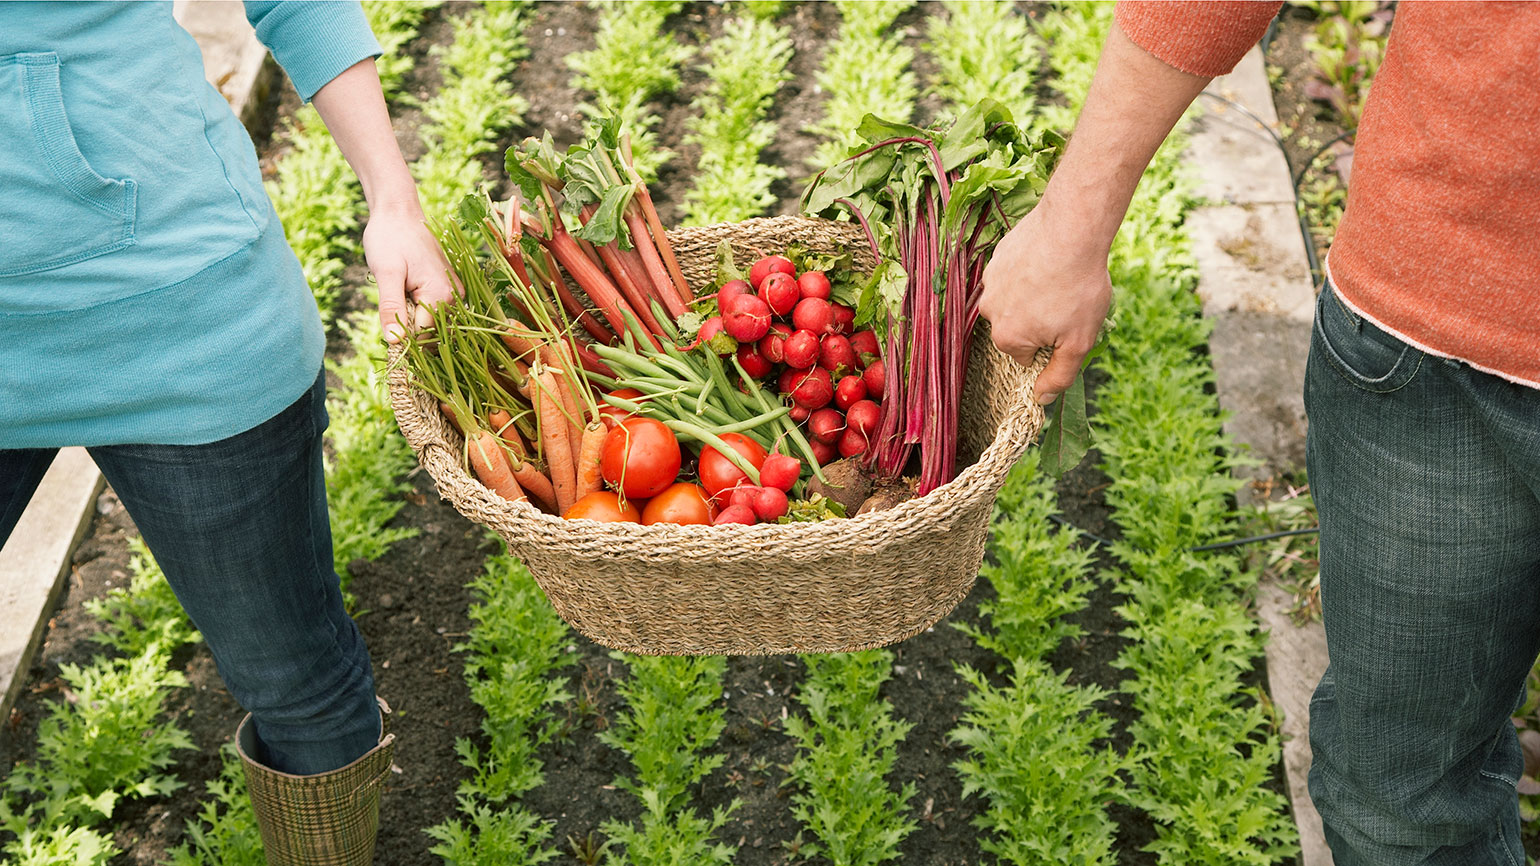 A newly harvested basket of fresh produce